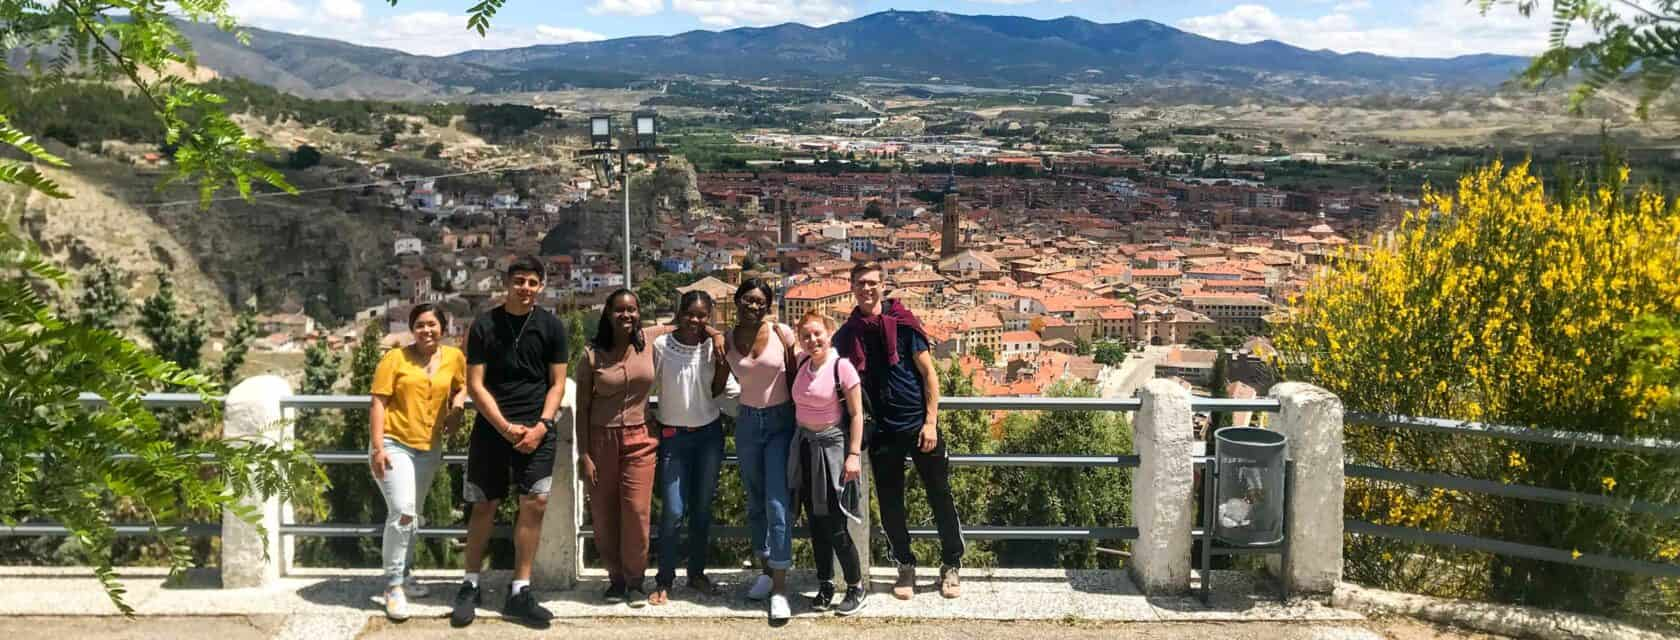 Students standing at a lookout over the city of Calatayud.